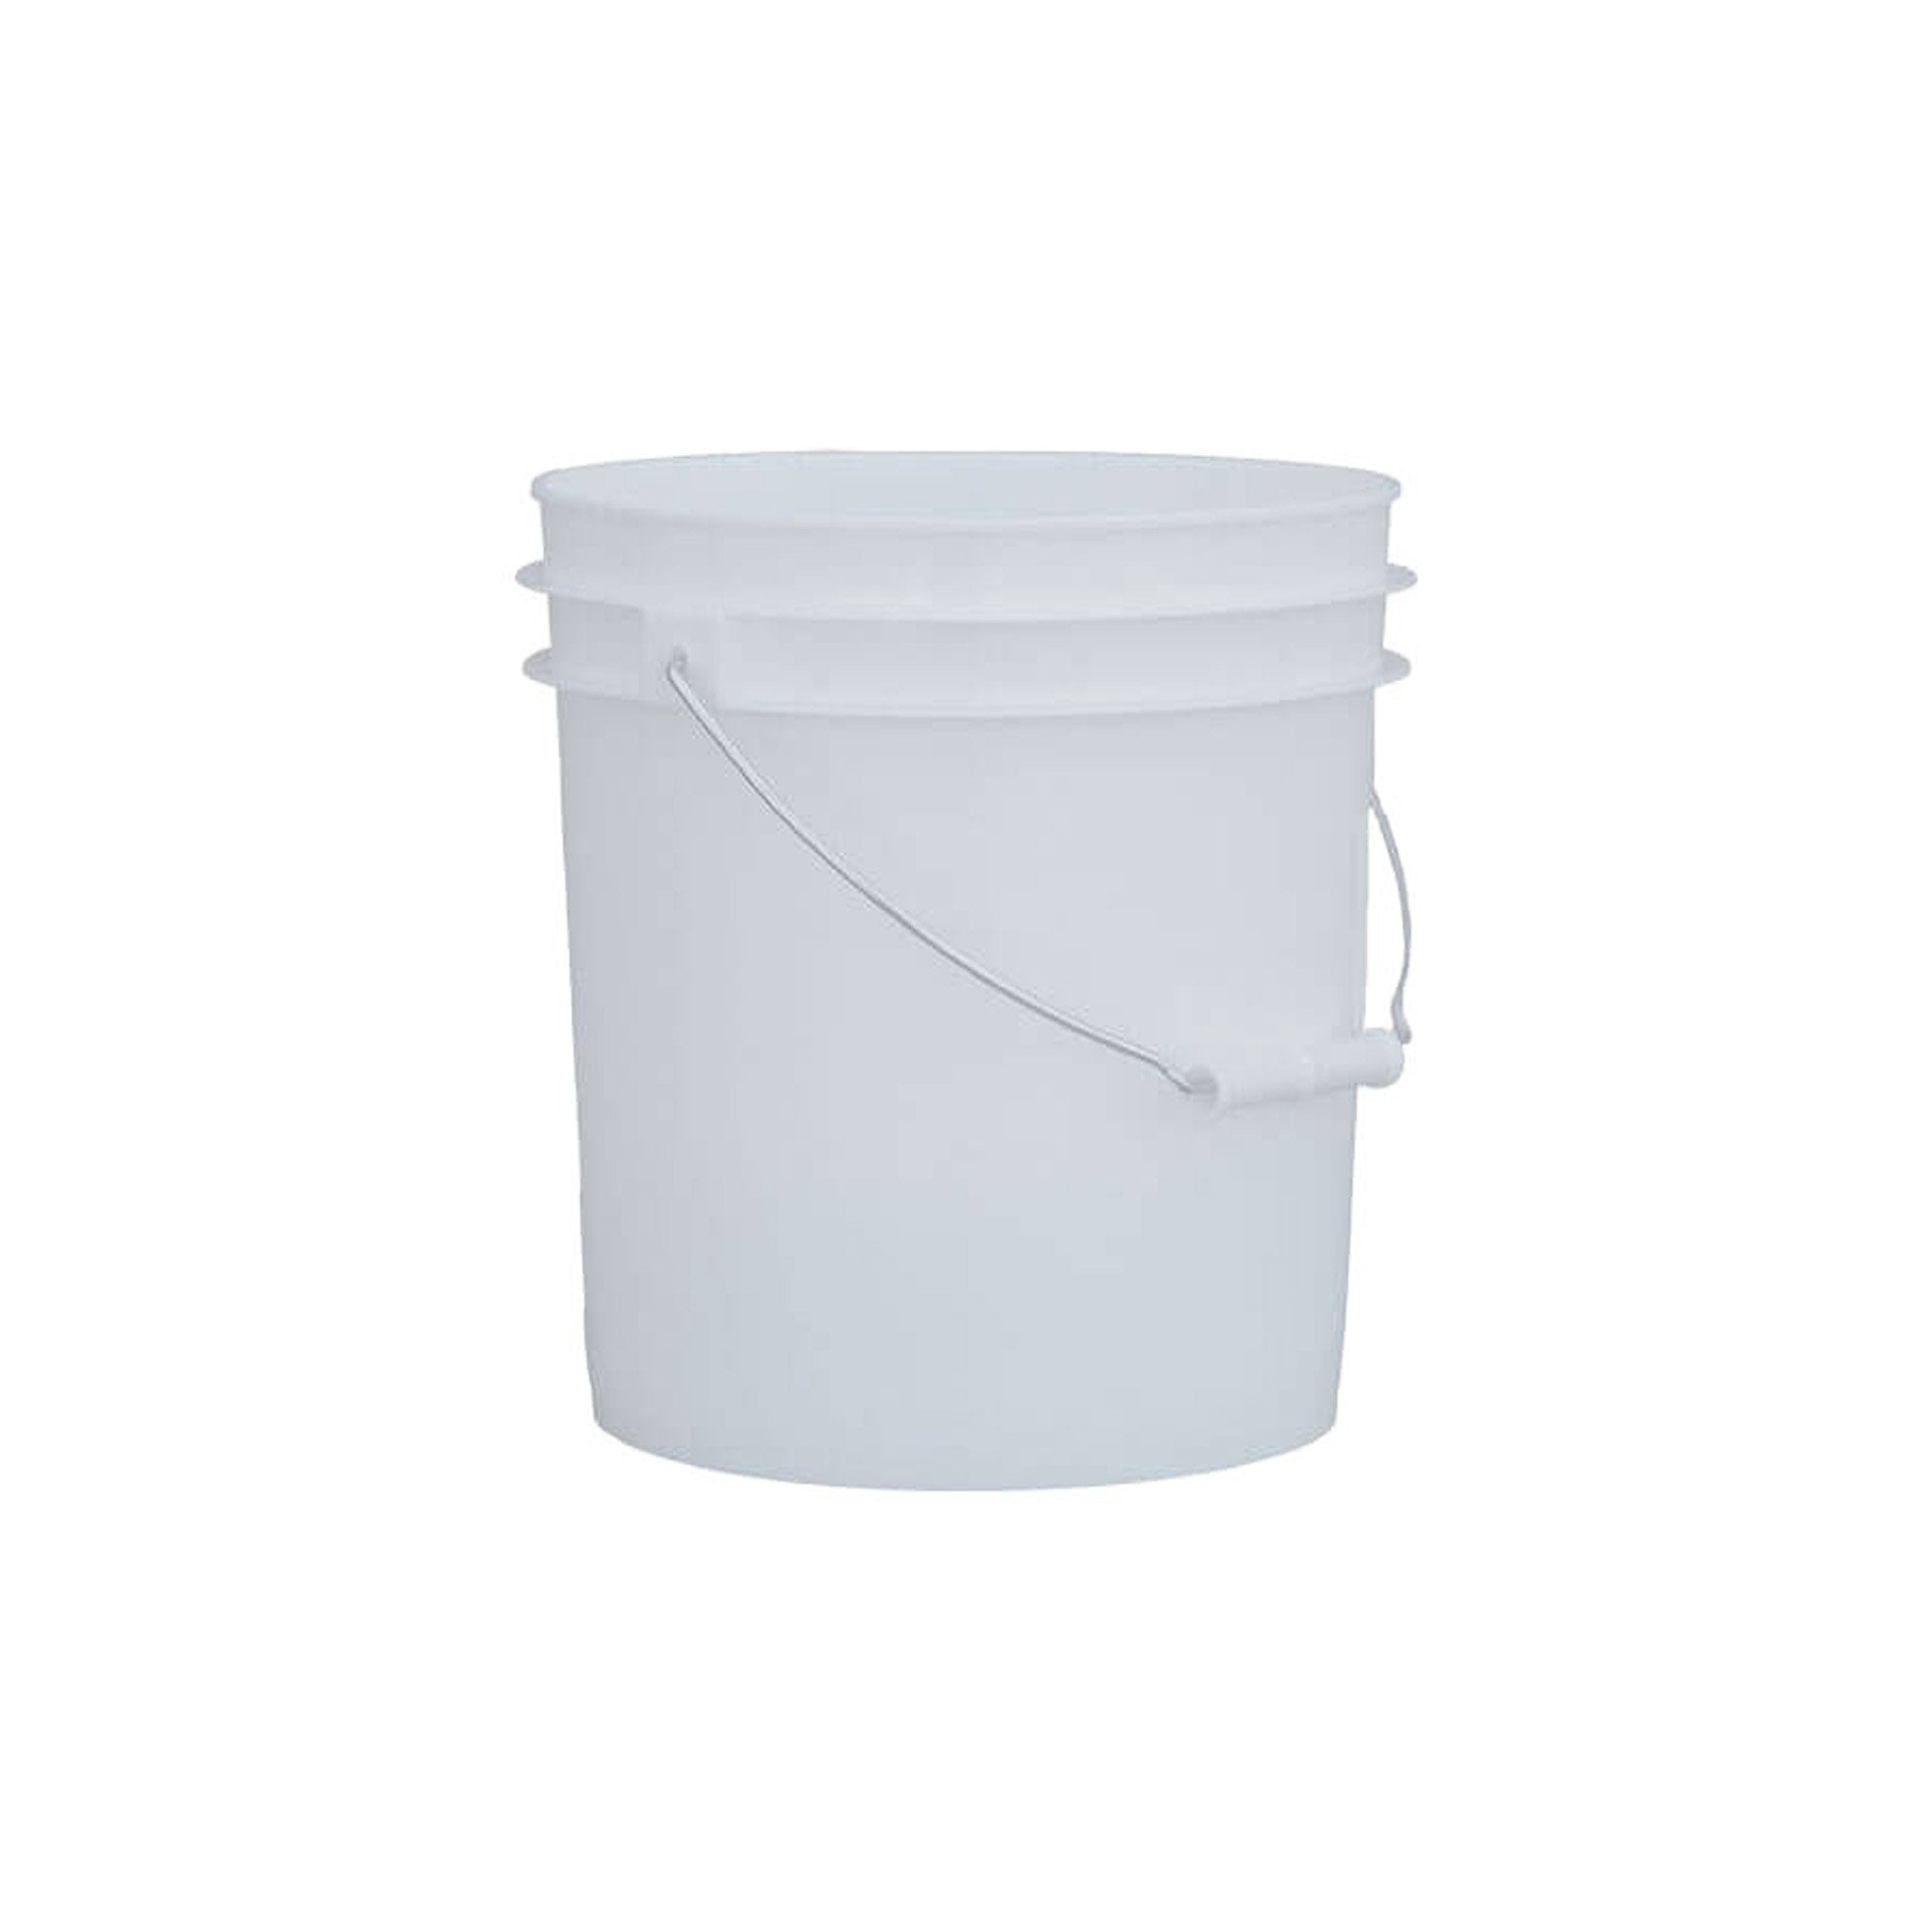 2 Gallon Bucket with Handle - Food Grade, White